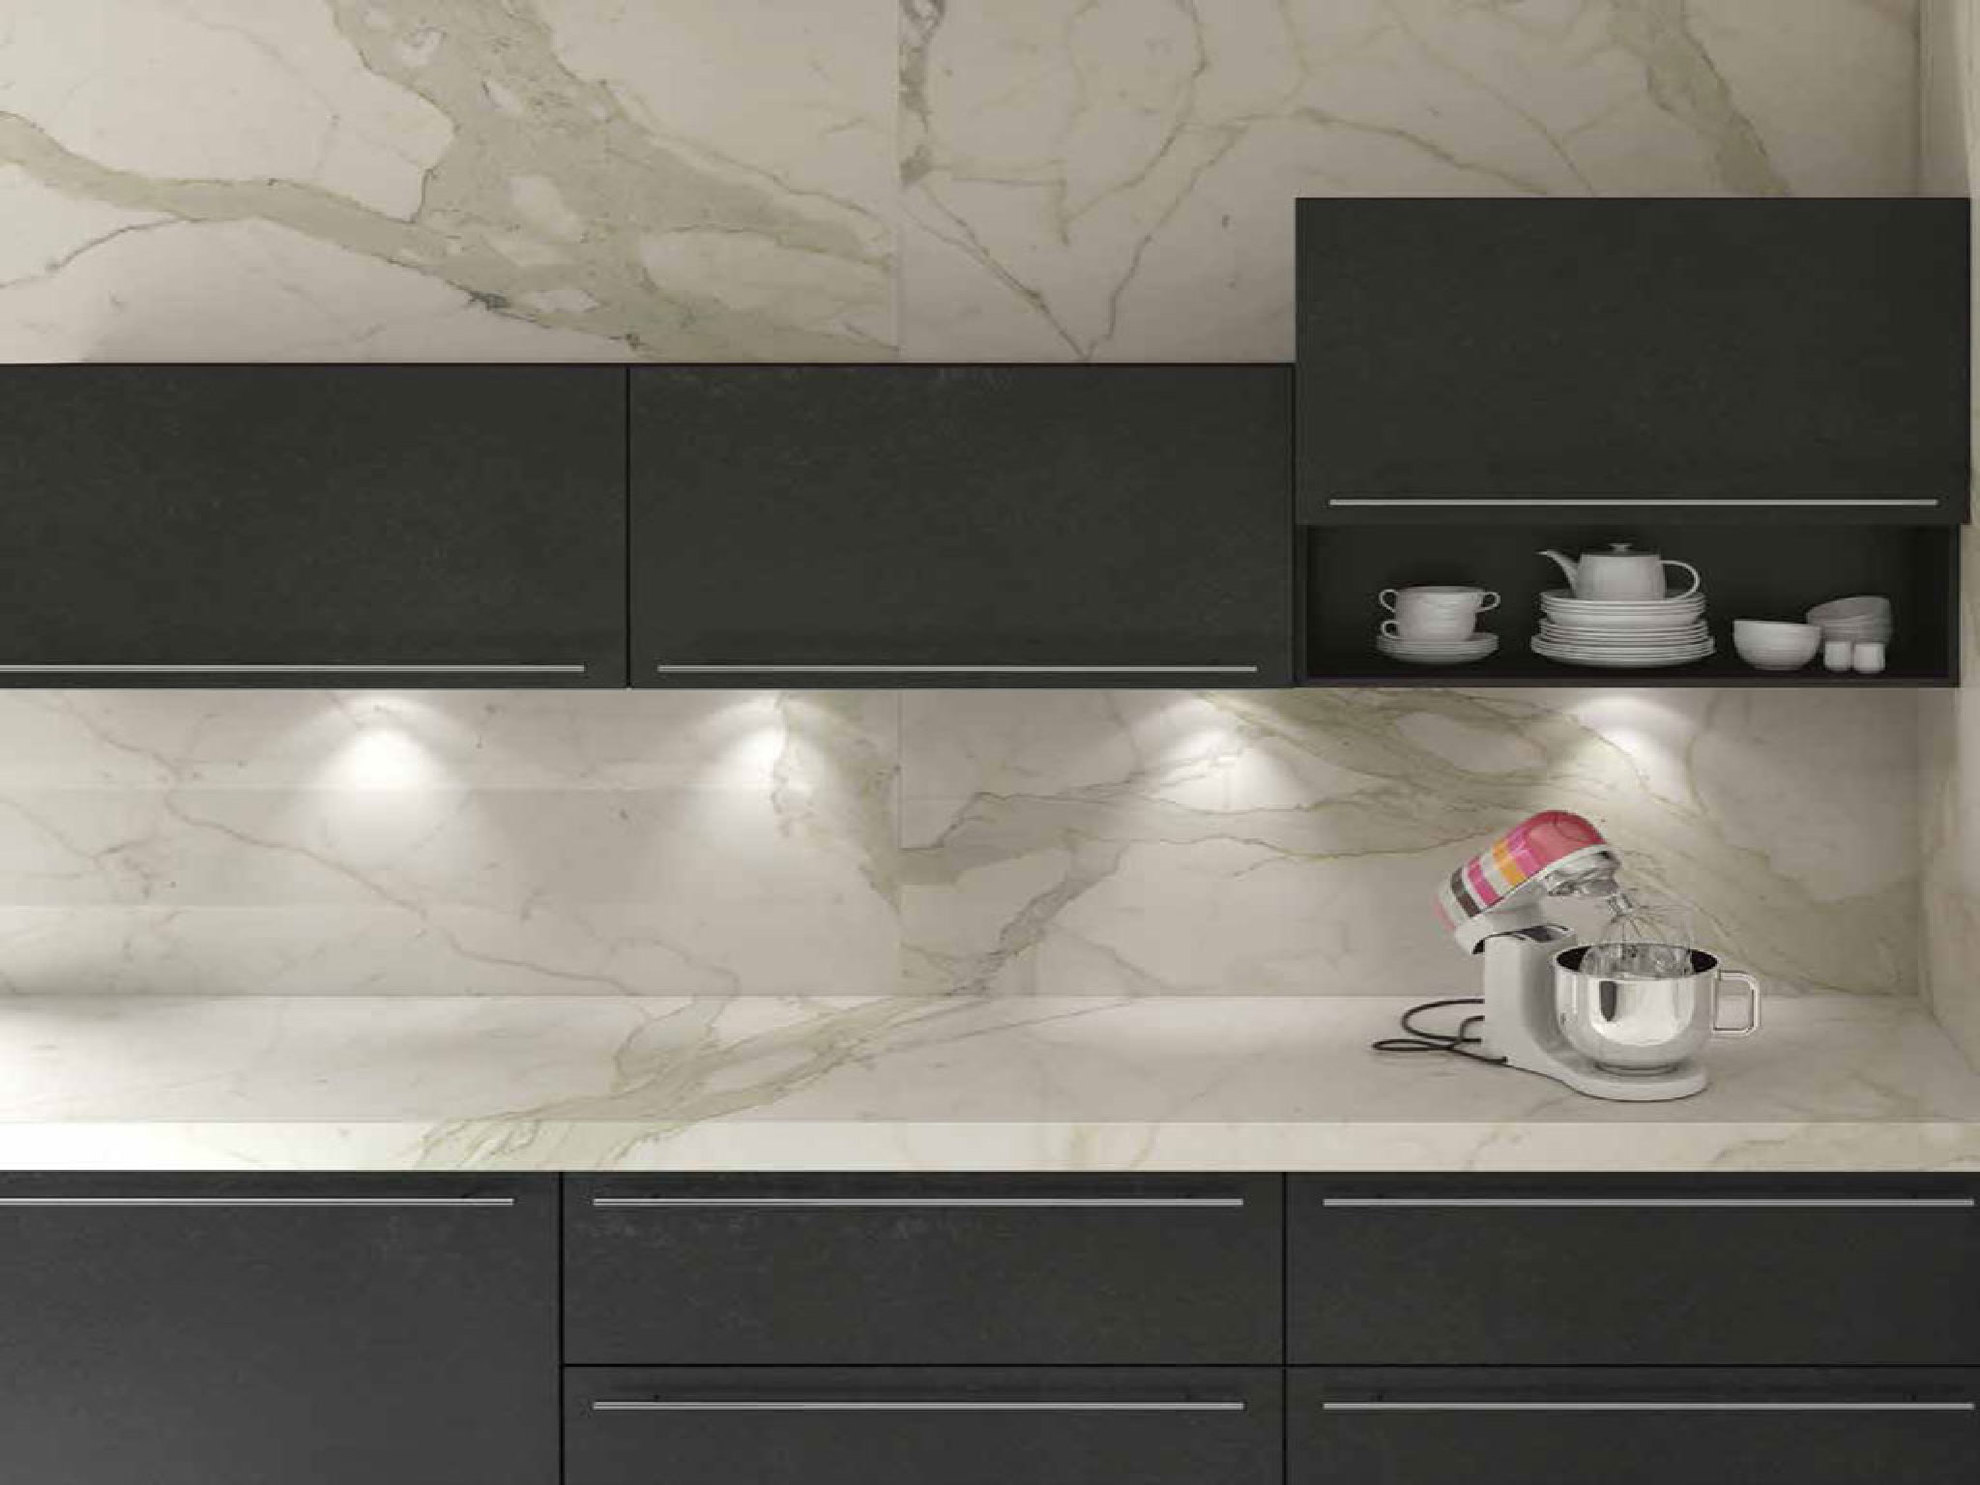 Tradition Meets Modernity In Fmg S Marblelike Tiles